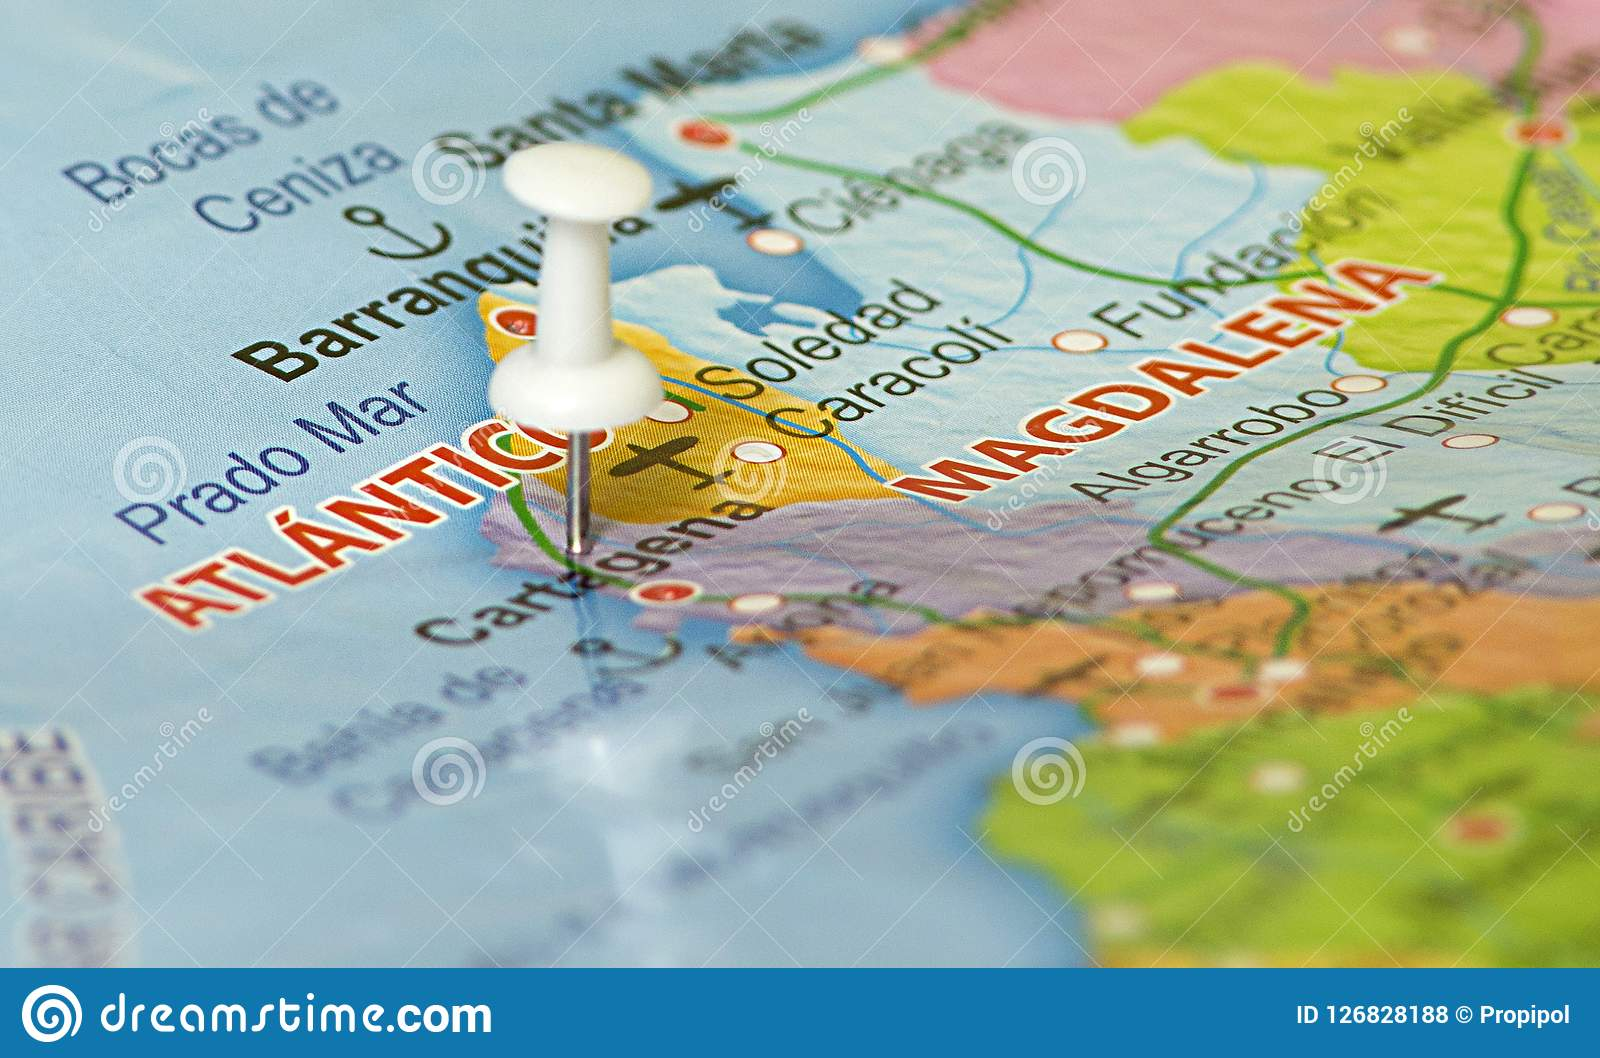 Geographical Location Of Cartagena Colombia Stock Photo - Image of on